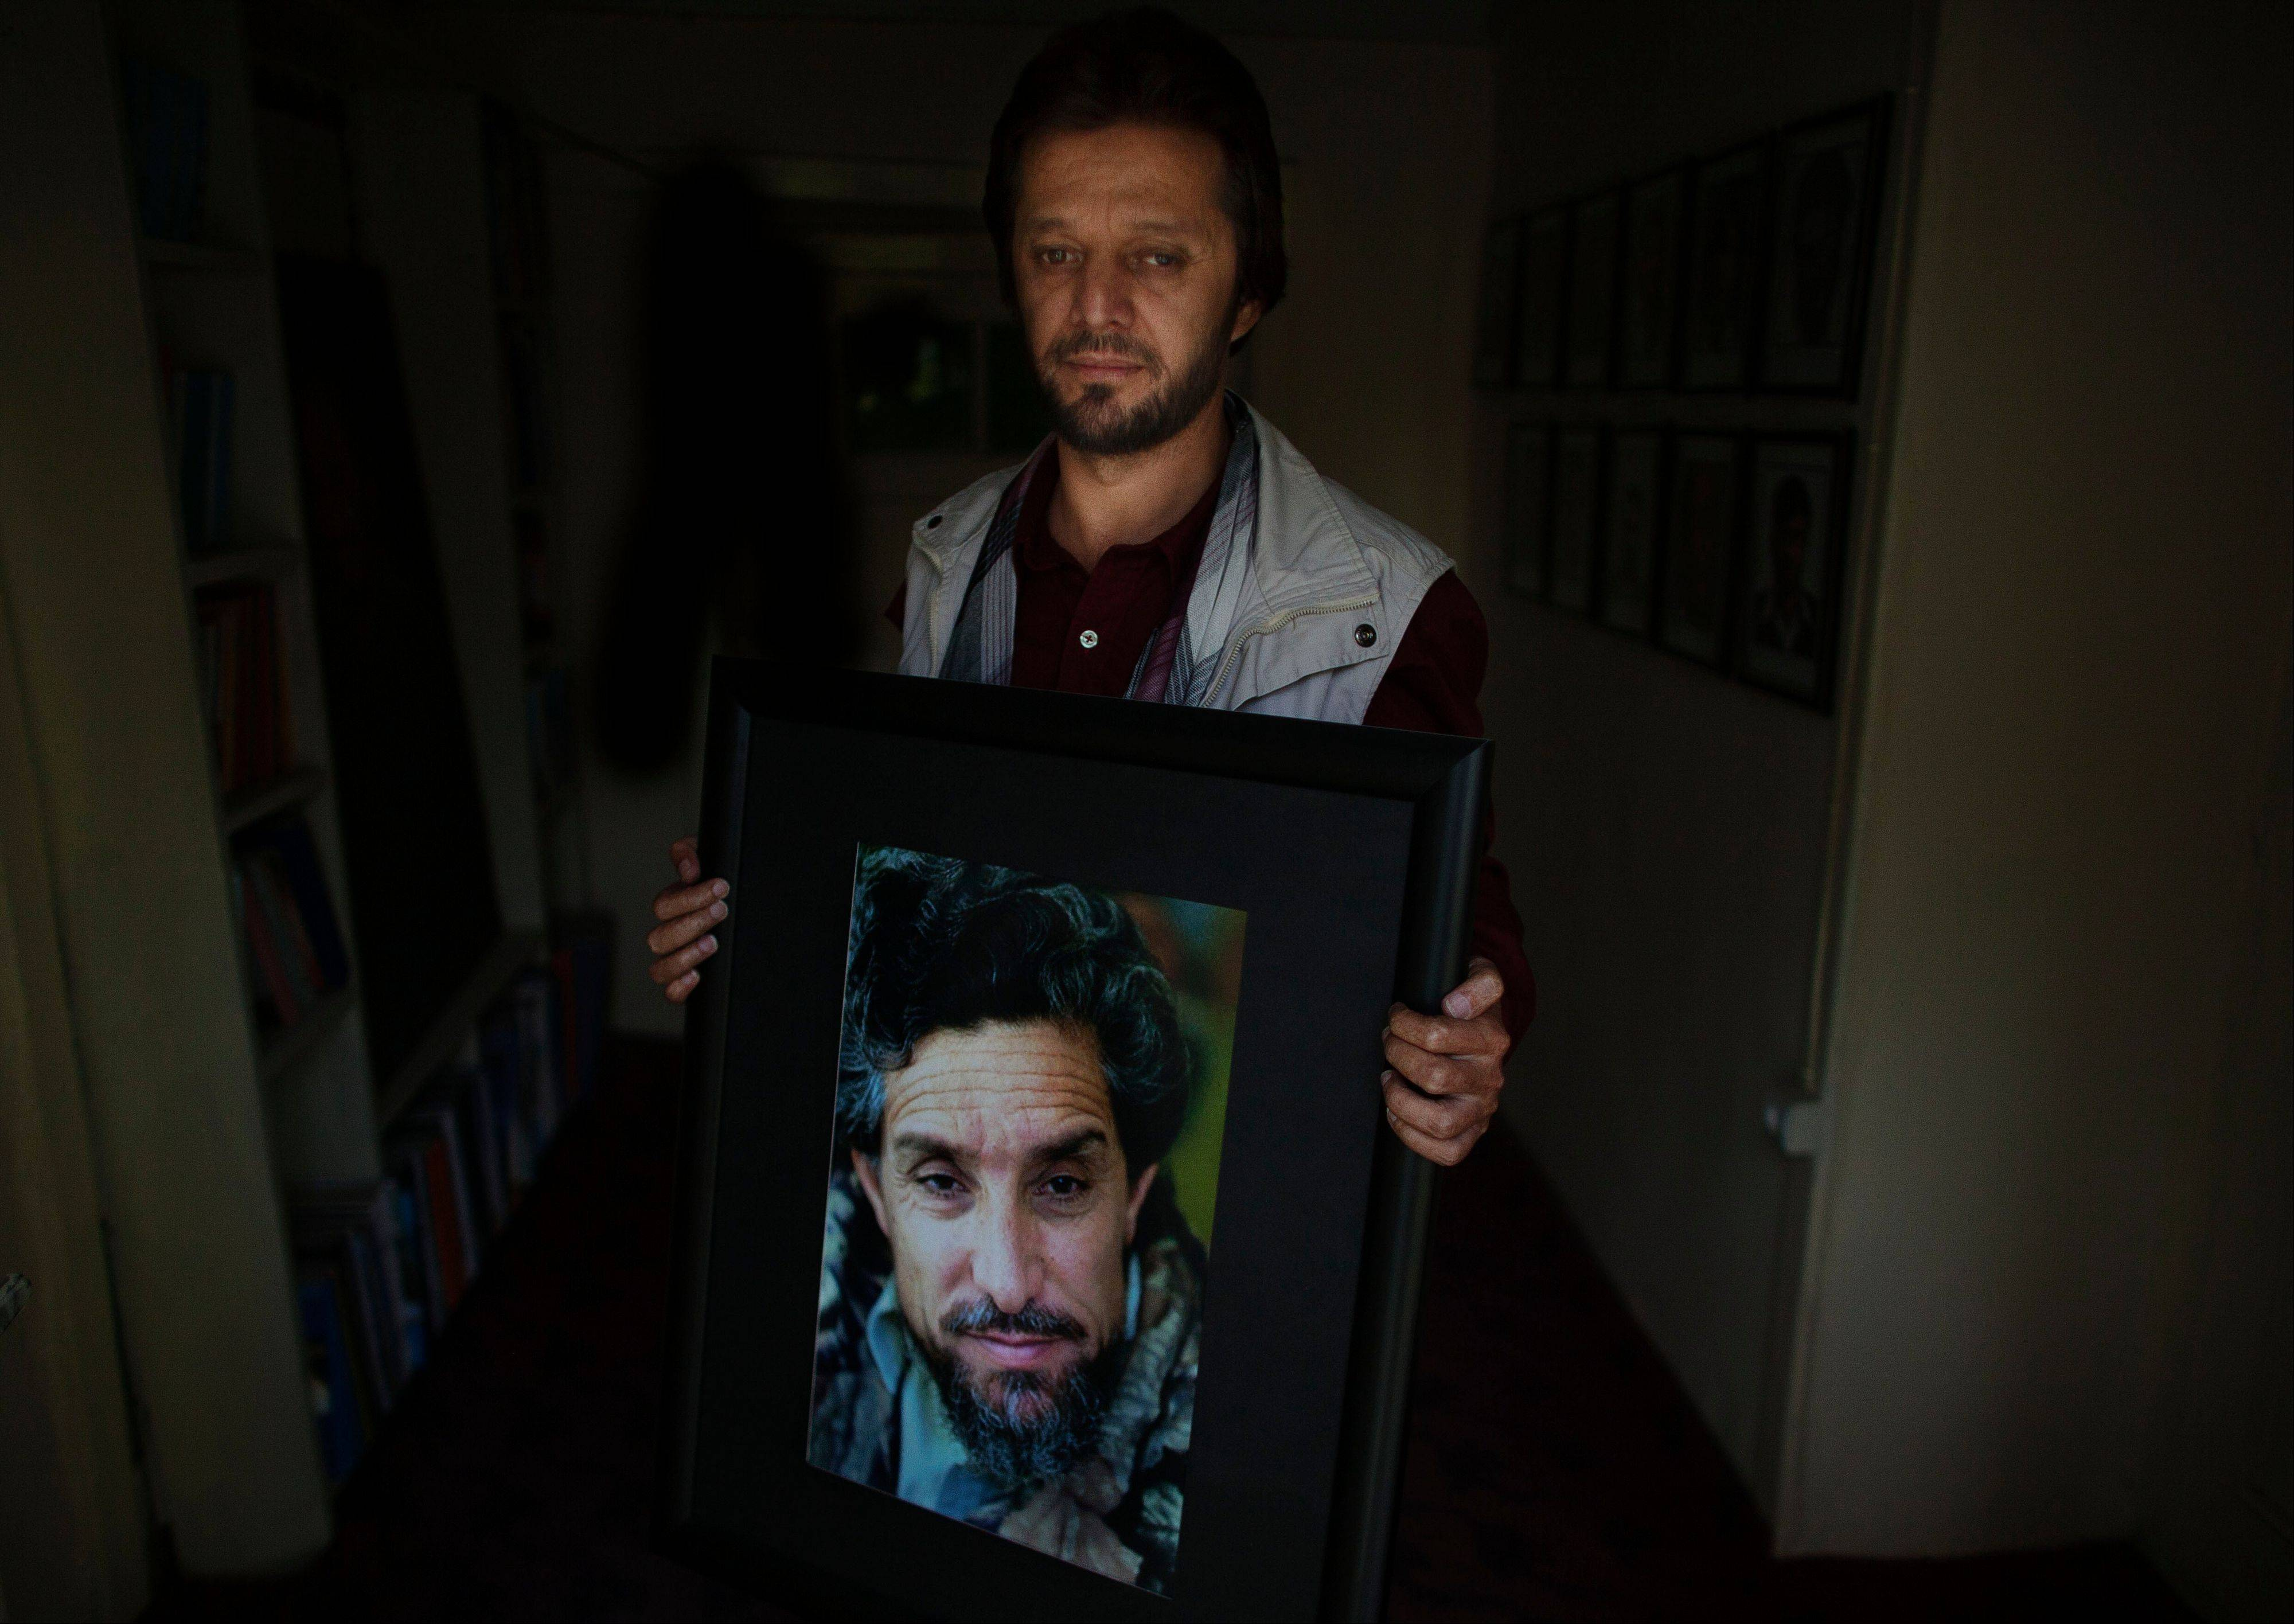 In this Wednesday, Oct. 3, 2012 photo, Fahim Dashti, executive of the National Journalists' Union, poses with a photograph of his wartime leader Ahmad Shah Massoud in Kabul Afghanistan. Dashti was with Massoud, the charismatic Tajik leader who commanded the Northern Alliance, when he was fatally wounded by two terrorists posing as journalists two days before the Sept. 11 attacks.